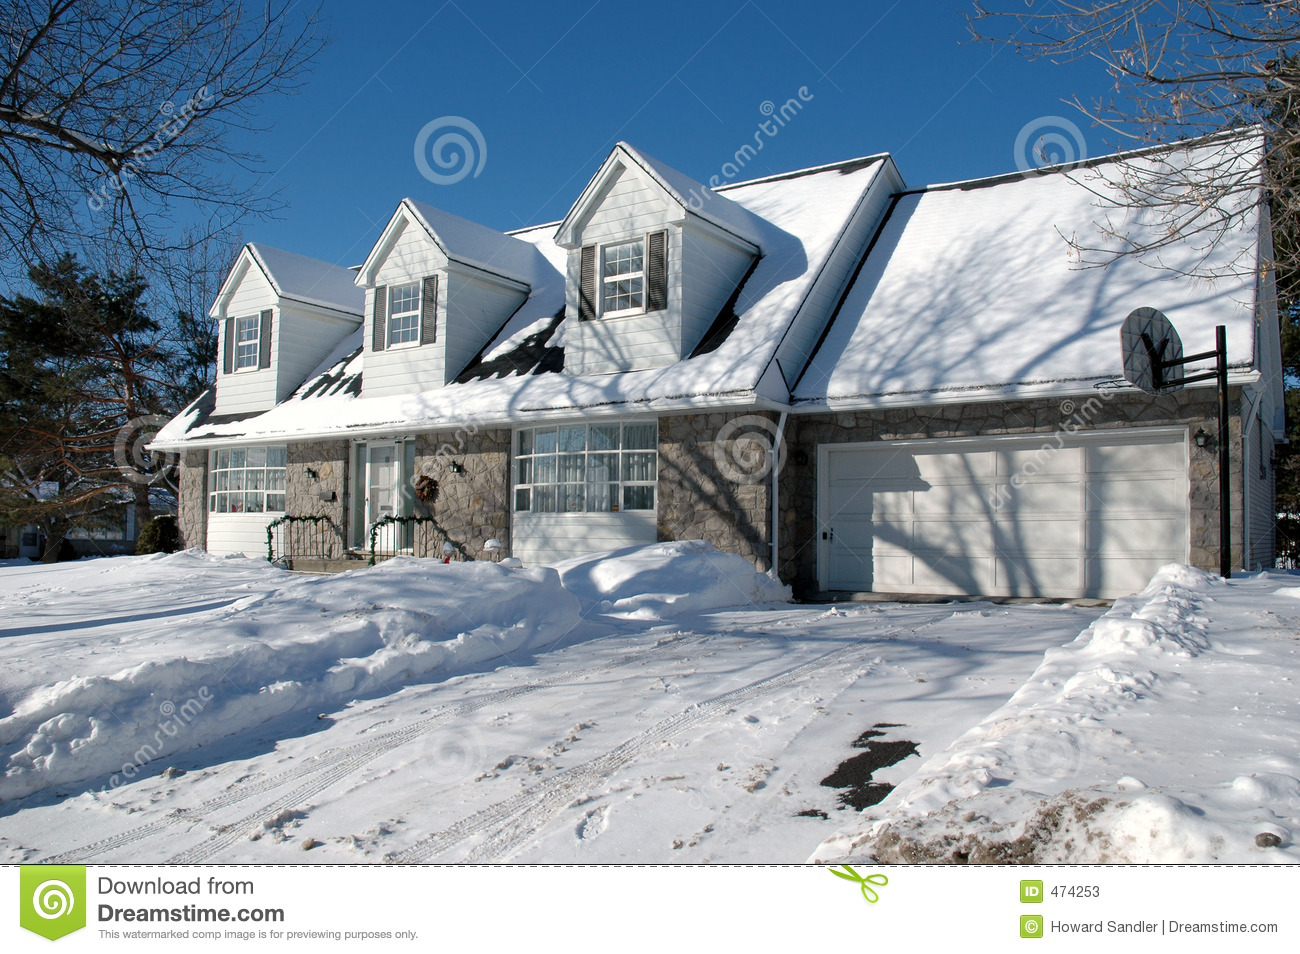 House with dormers in winter